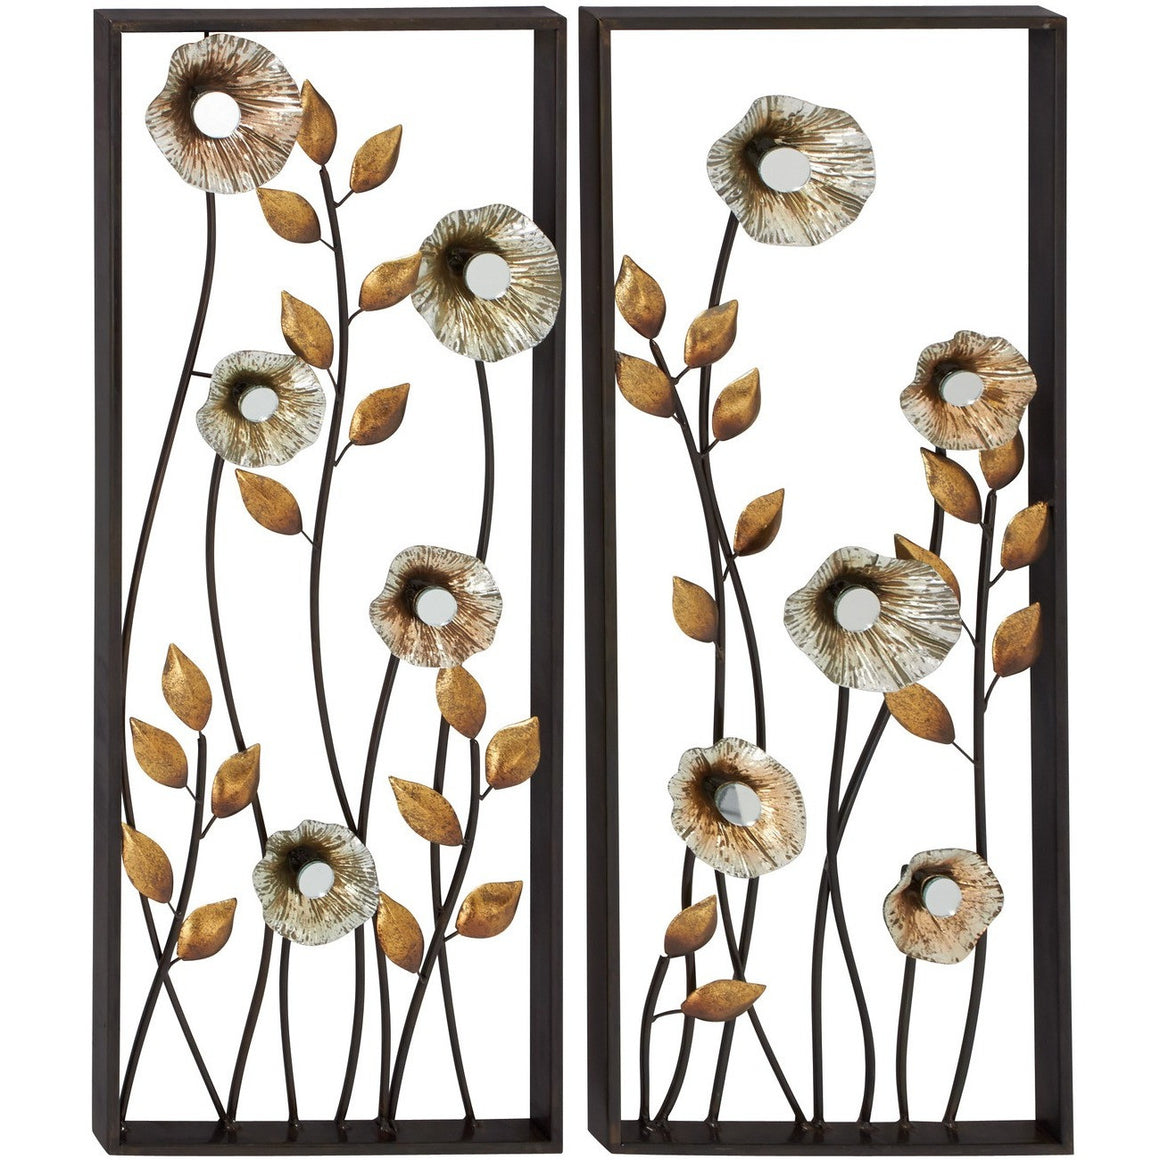 Benzara 54492 Set of 2 Flowers Metal Wall Decor